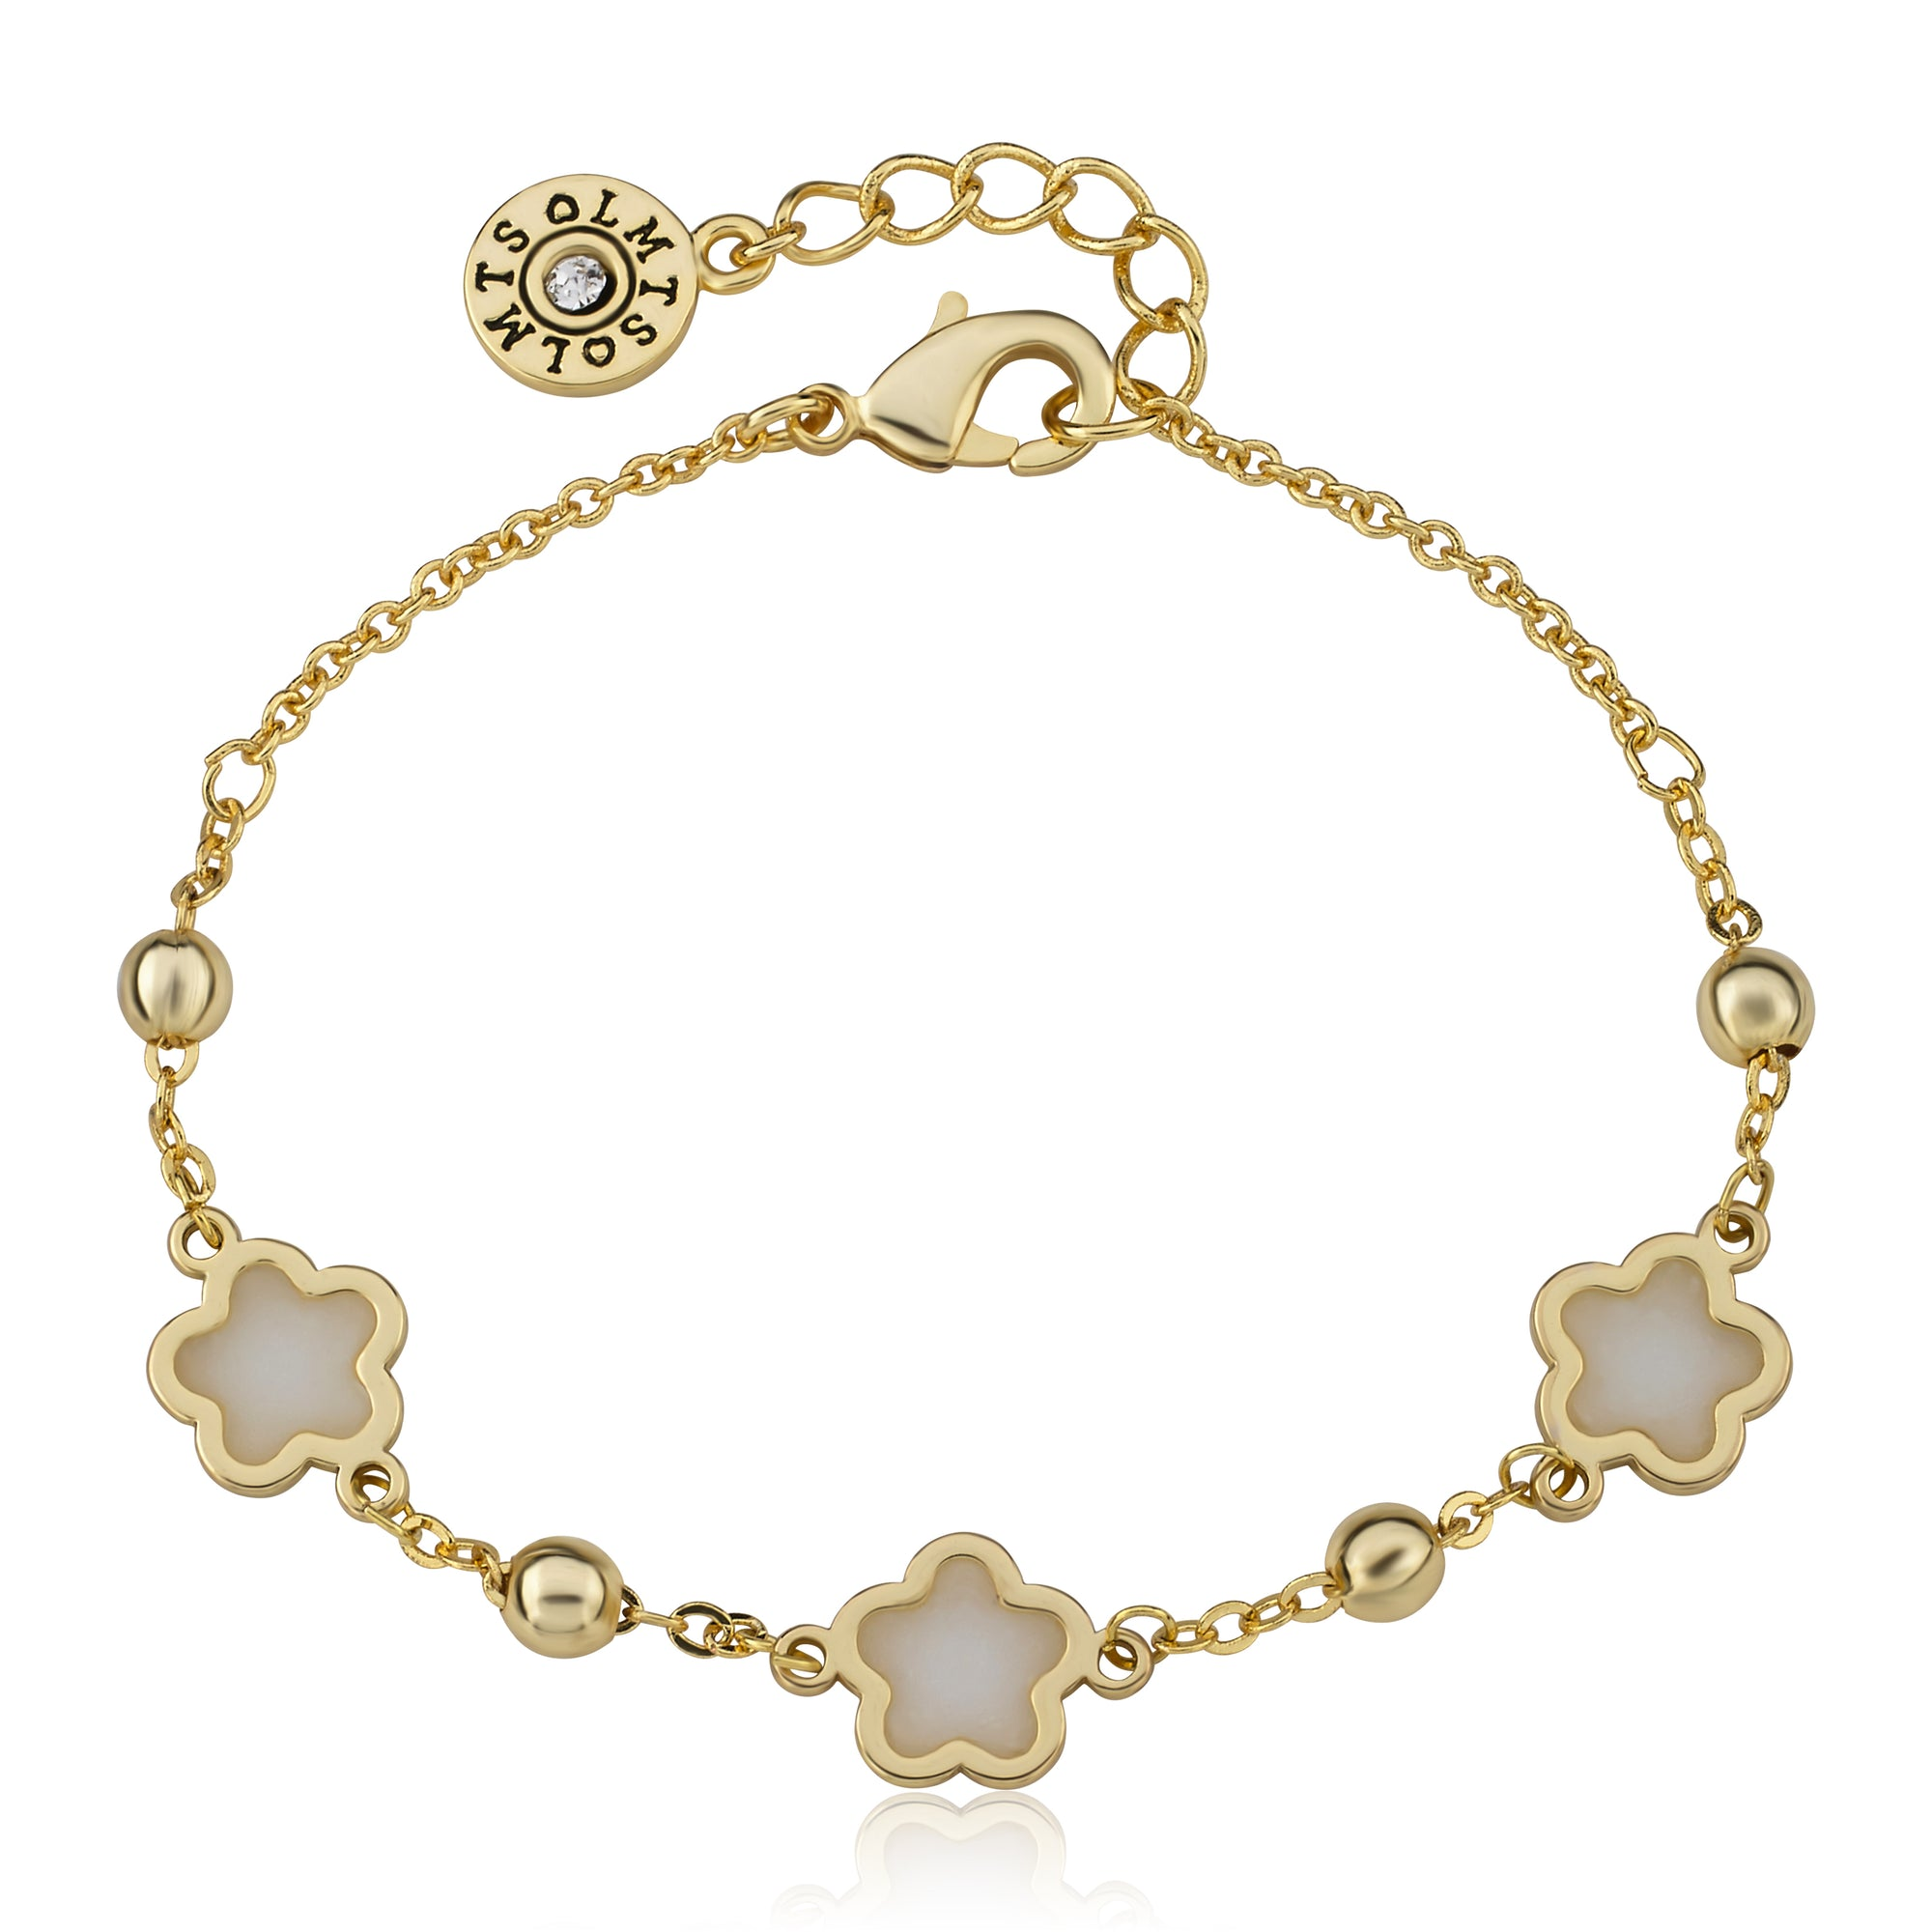 "Twin Star LMTS 14k Gold Plated White Transparent Triple Flower Chain Bracelet -4.5"" w/ Extention"